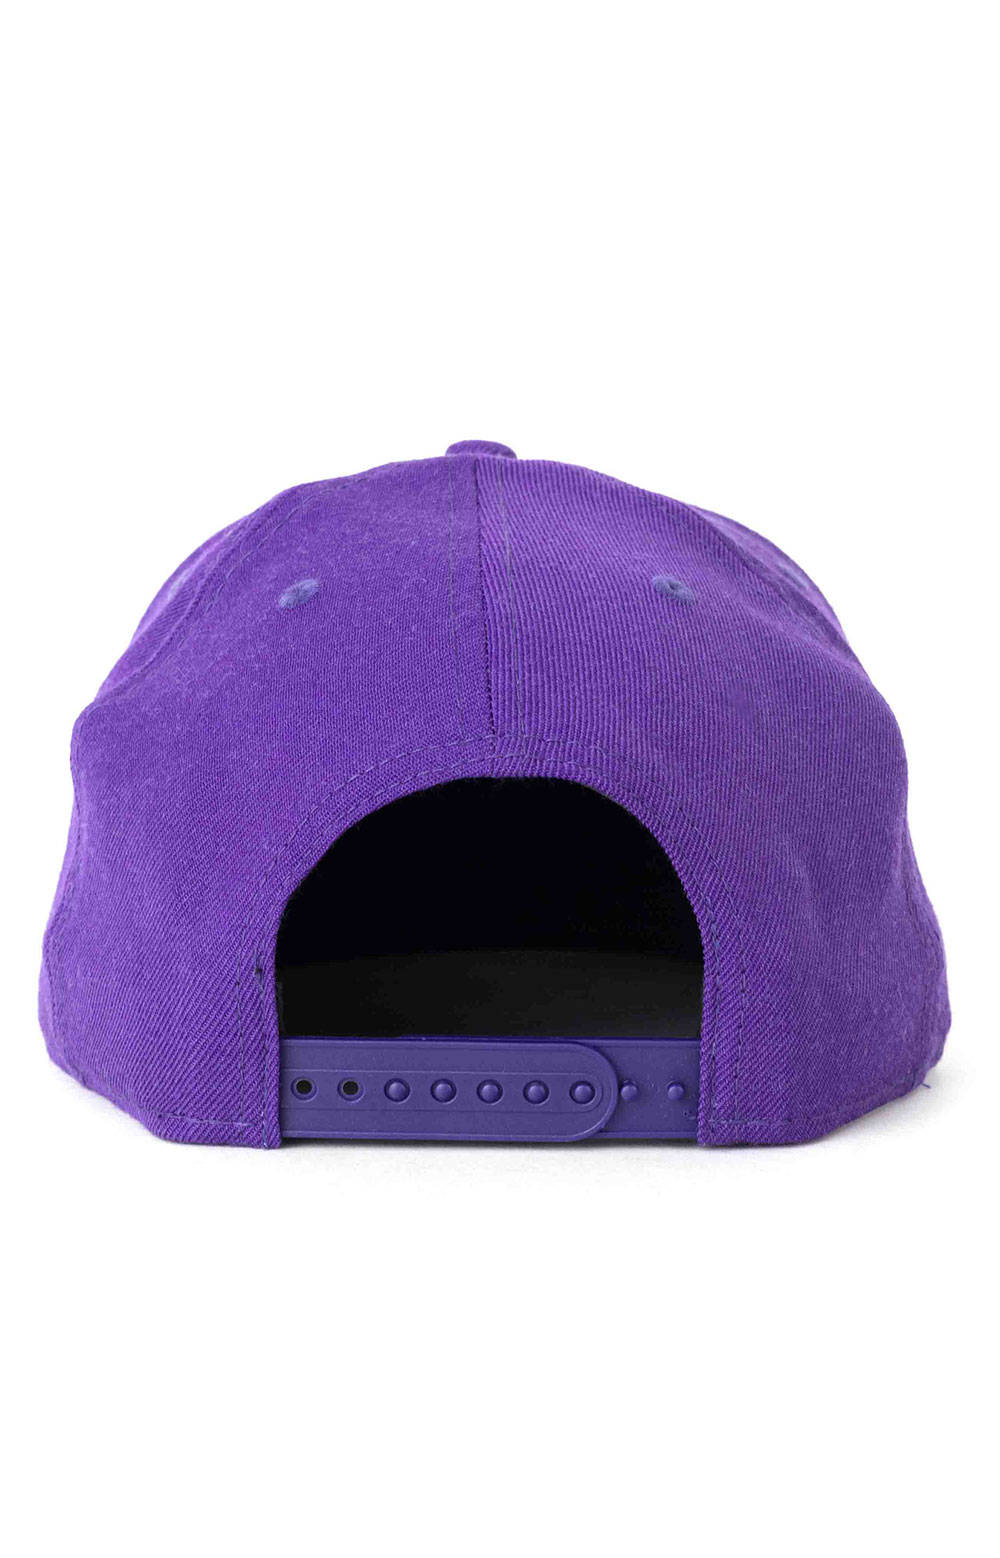 9Fifty Upside Logo Los Angeles Lakers Snap-Back Hat 3